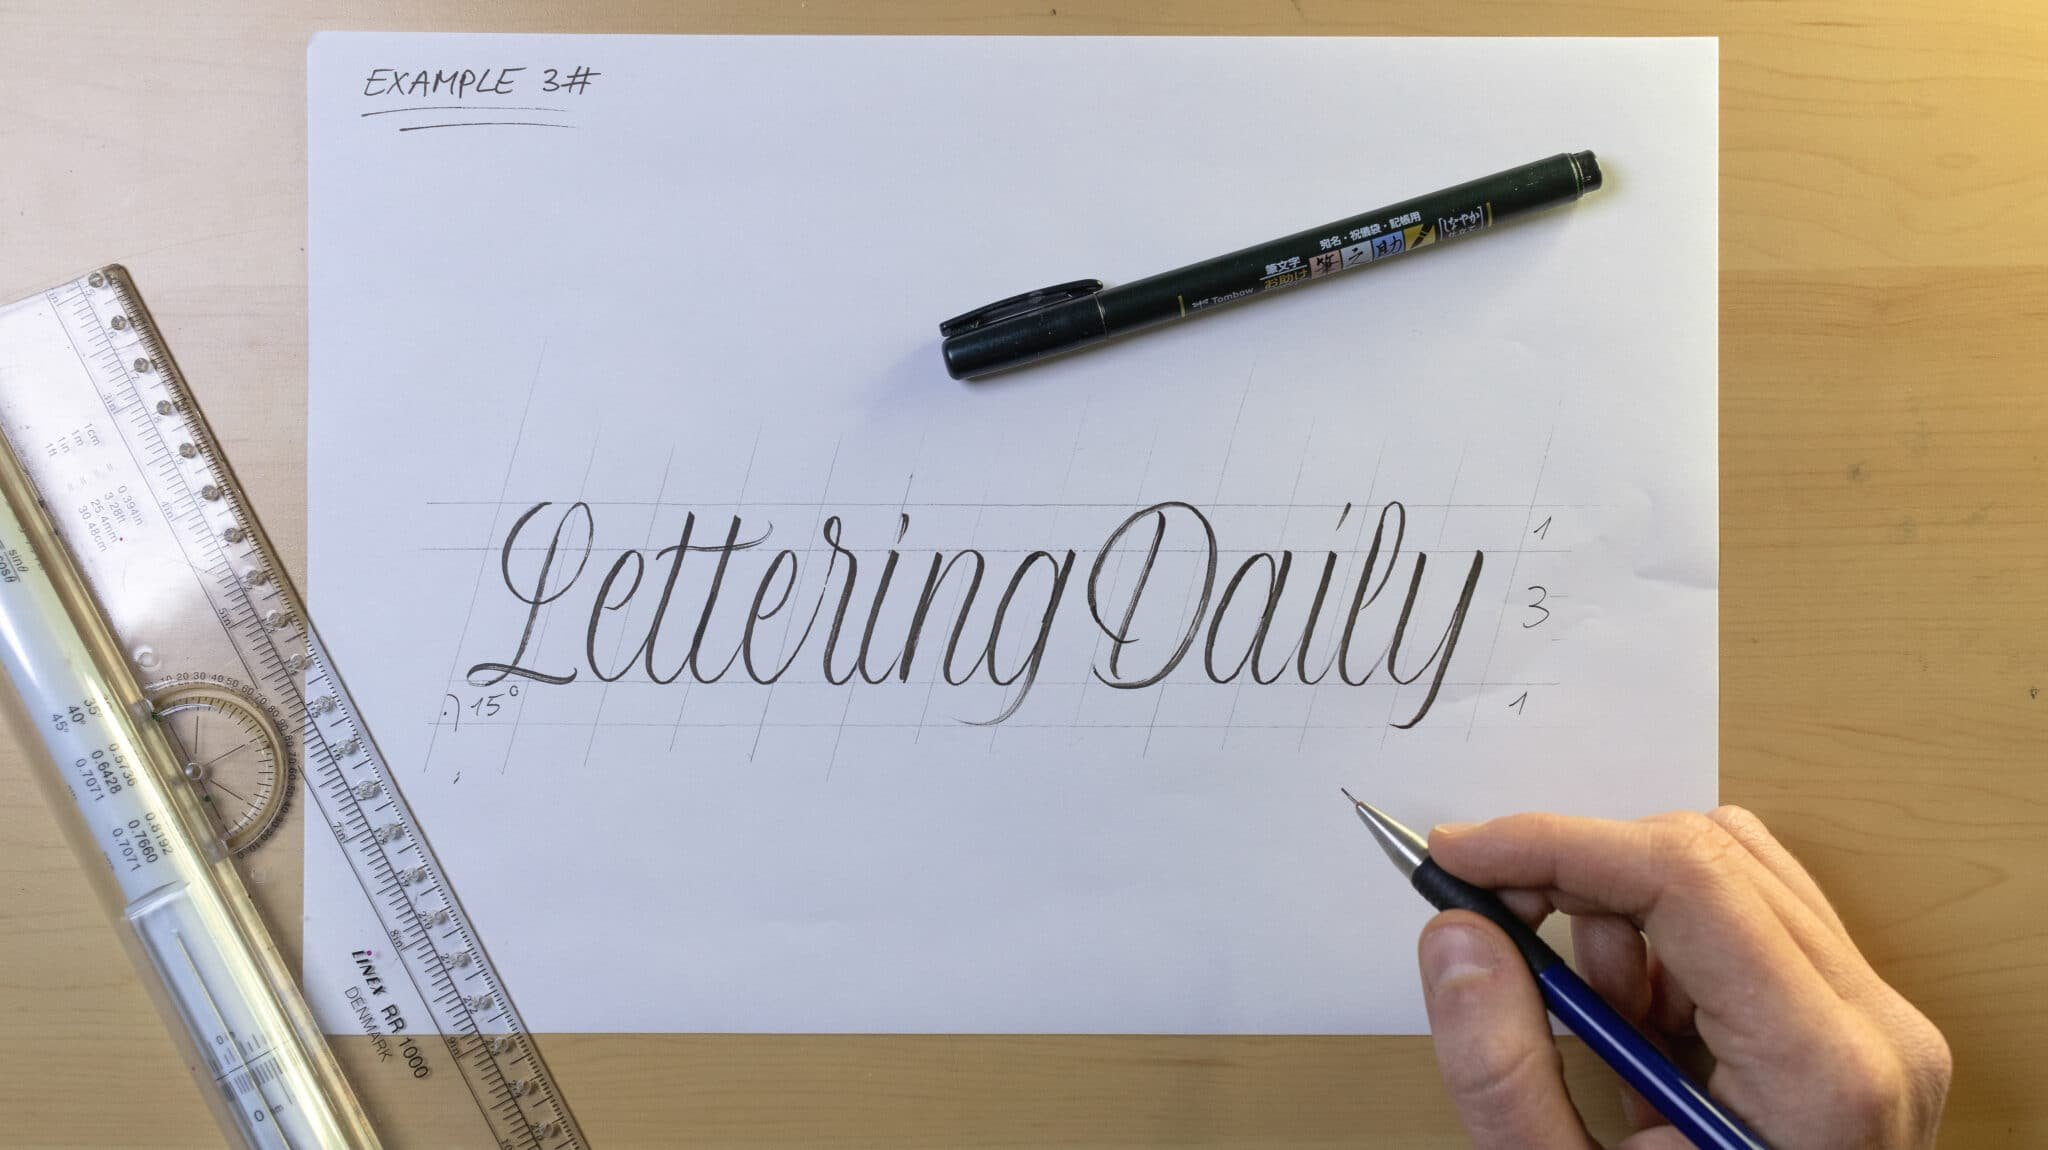 How To Make Calligraphy Guidelines Image 9 - Lettering Daily